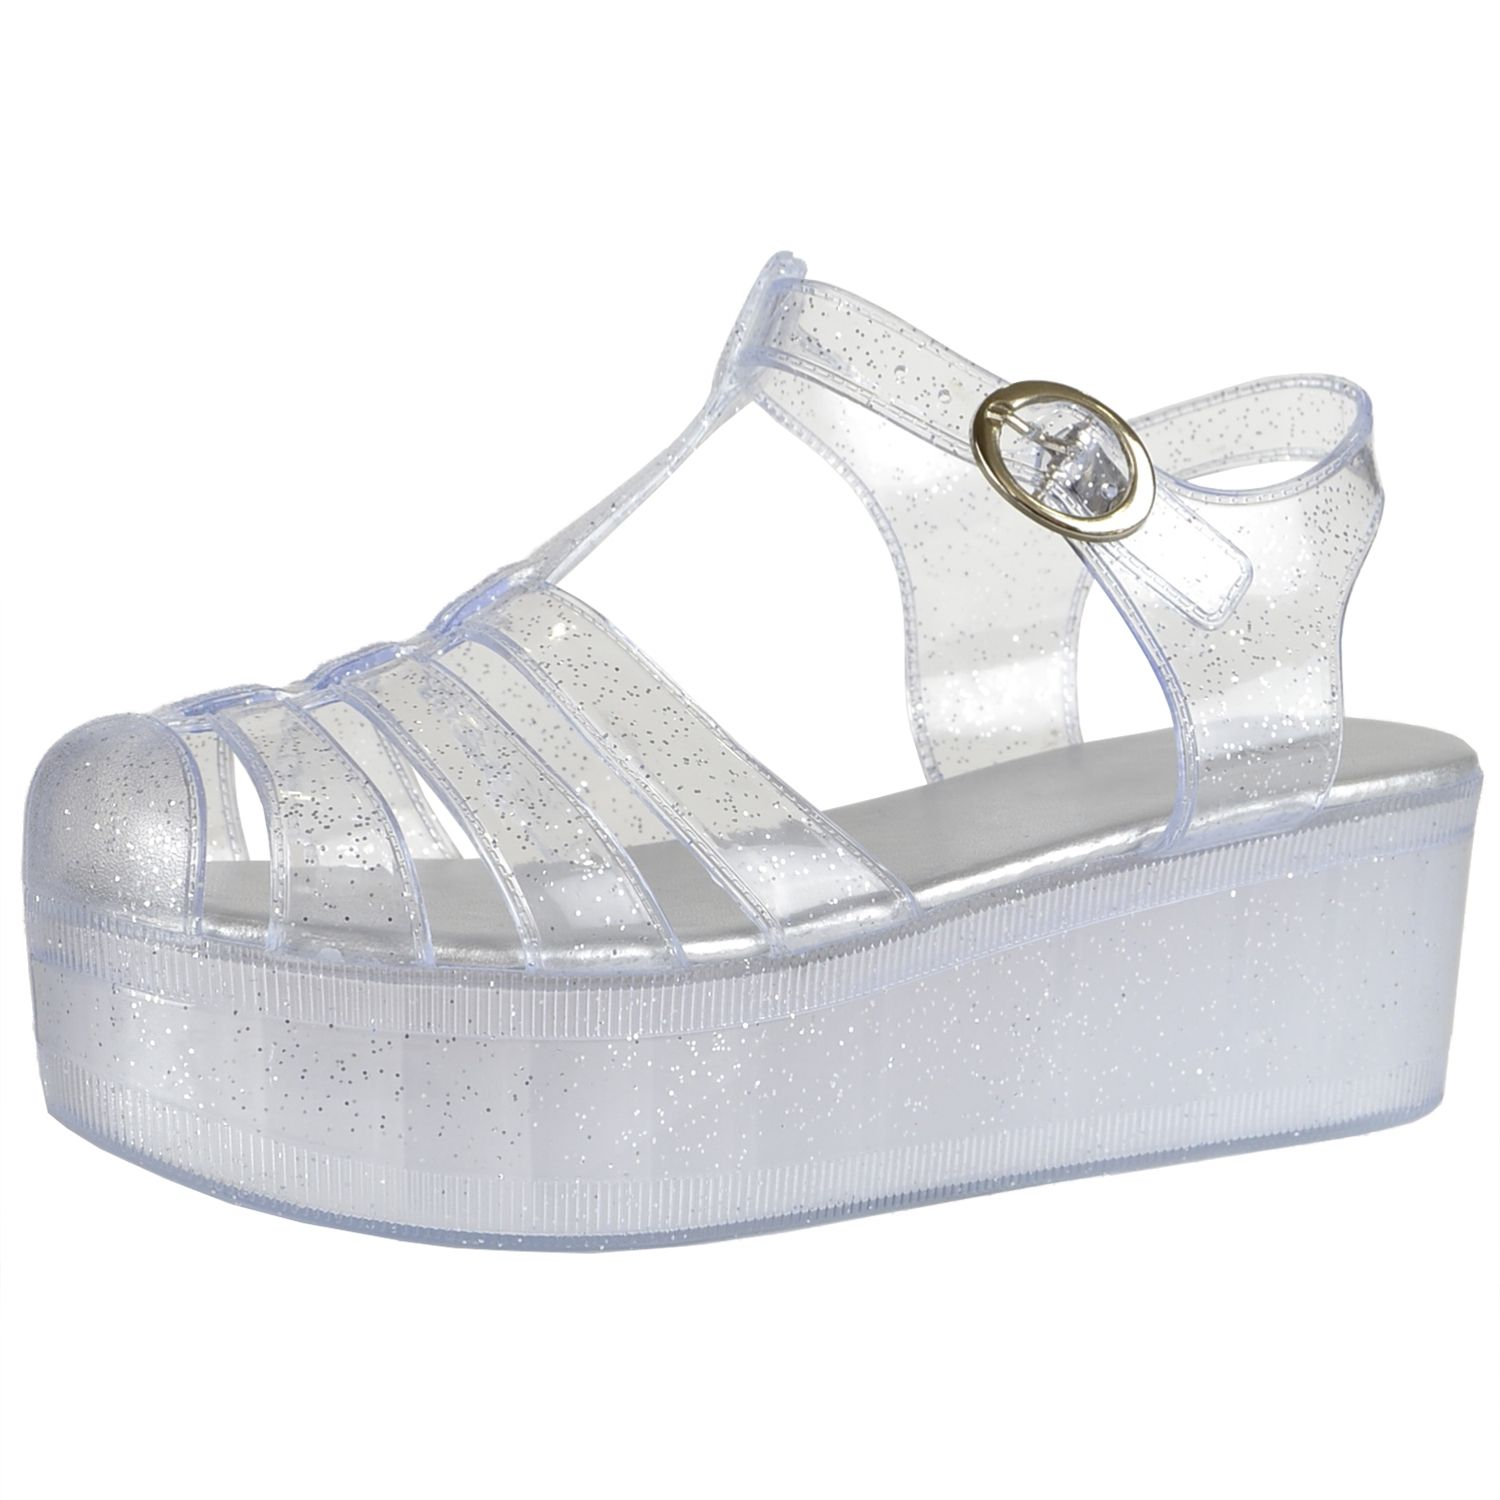 Clear Jelly Sandals #jelly #sandals